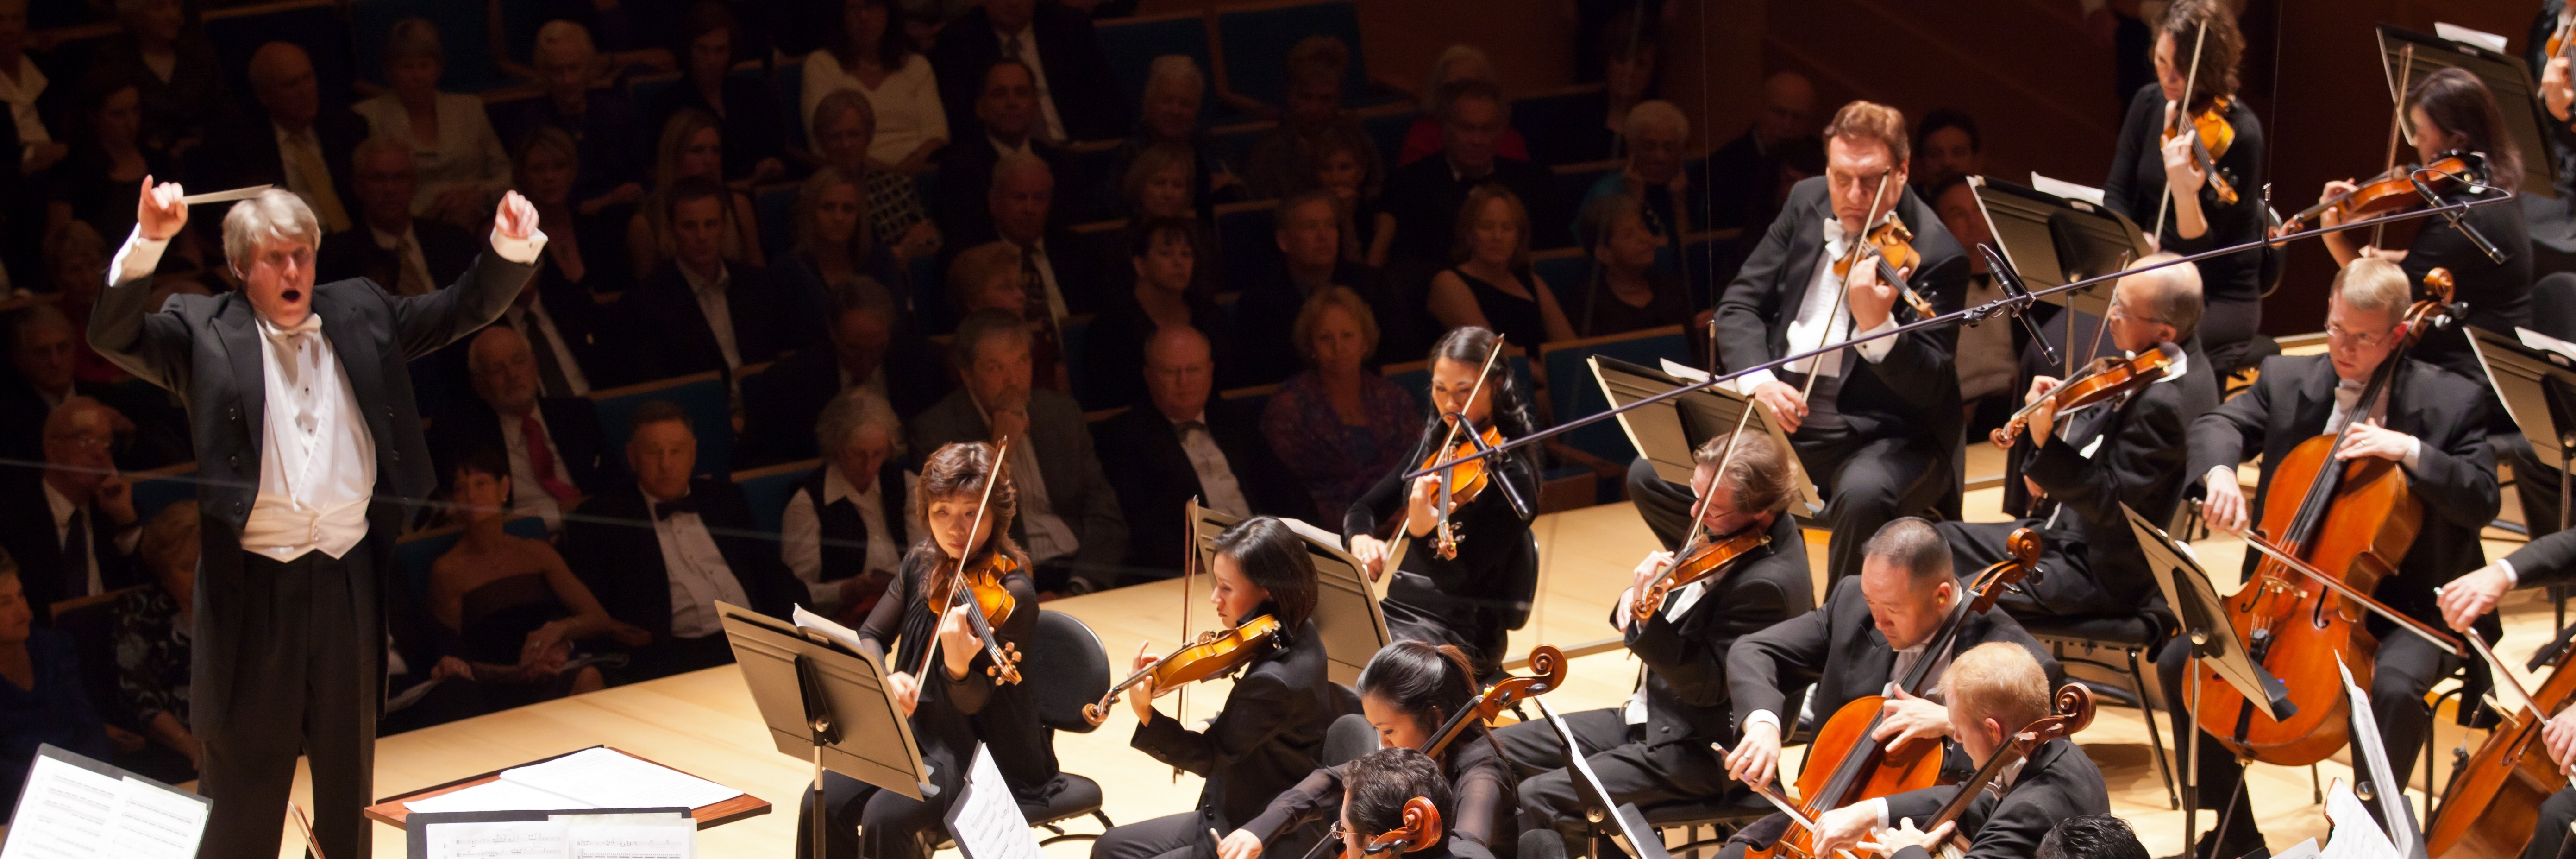 RESTRAINT IN THE FACE OF TRAGEDY: KC Symphony introduces significant new Leshnoff work